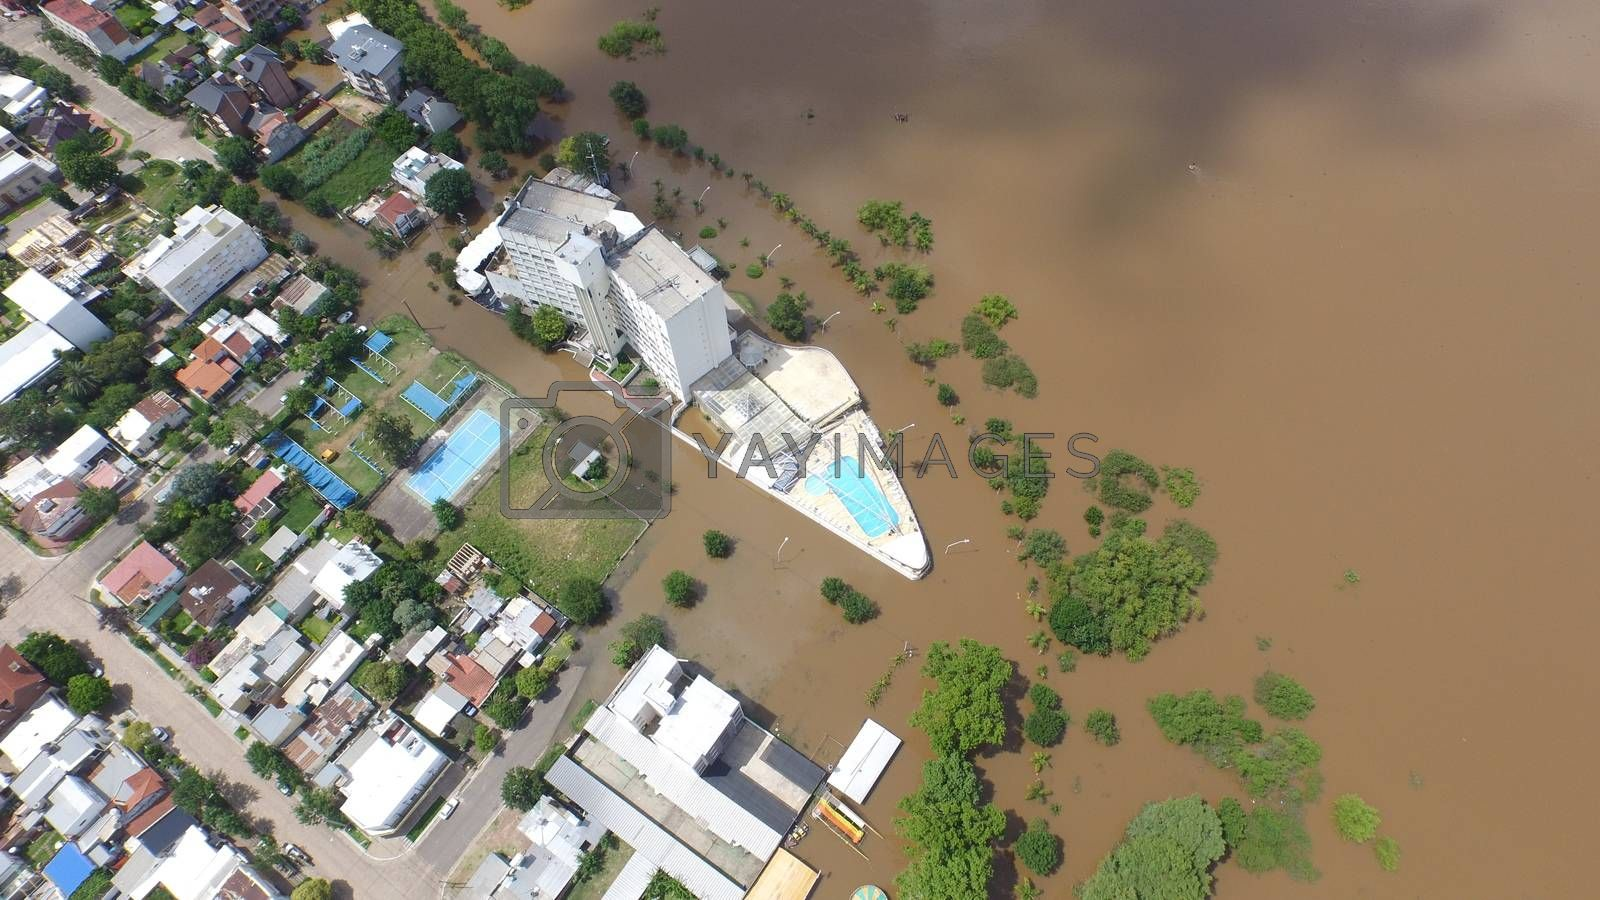 ARGENTINA, Colon: Drone footage shows the flooded city of Colon, Argentina on December 28, 2015. The flooding, caused by a dramatic rise in the level of the Rio Uruguay, had begun more than one week prior. The floods have caused the evacuation of more than 170,000 people in Uruguay, Paraguay, northern Argentina, and southern Brazil.